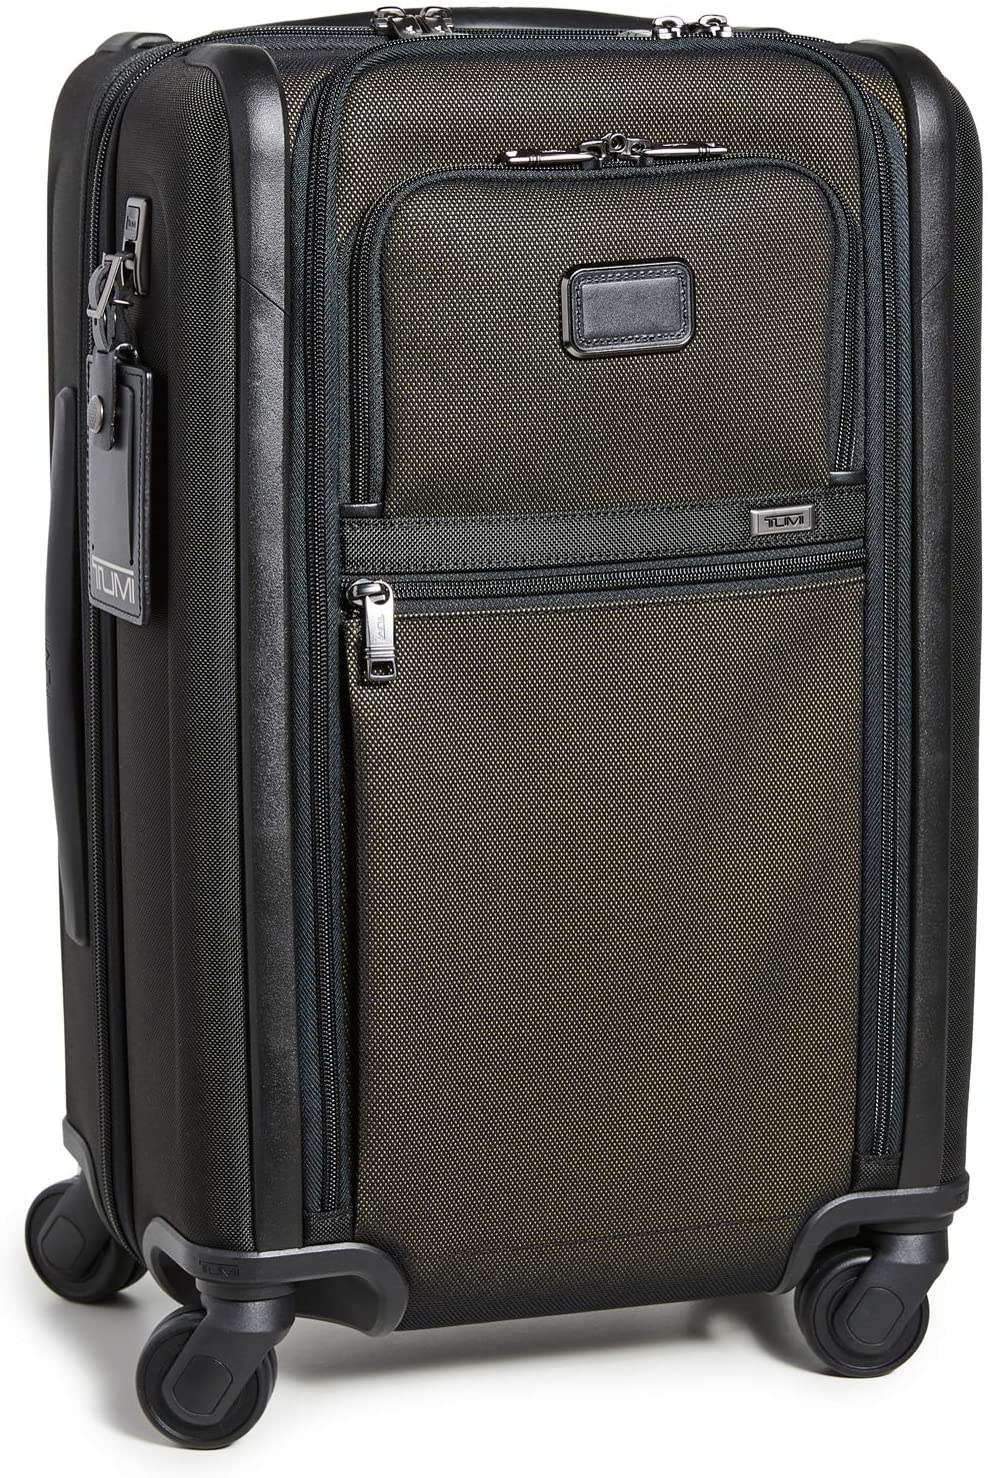 TUMI Alpha 3 International Dual Access 4 Wheeled Carry-On Luggage, 22 Inch Rolling Suitcase